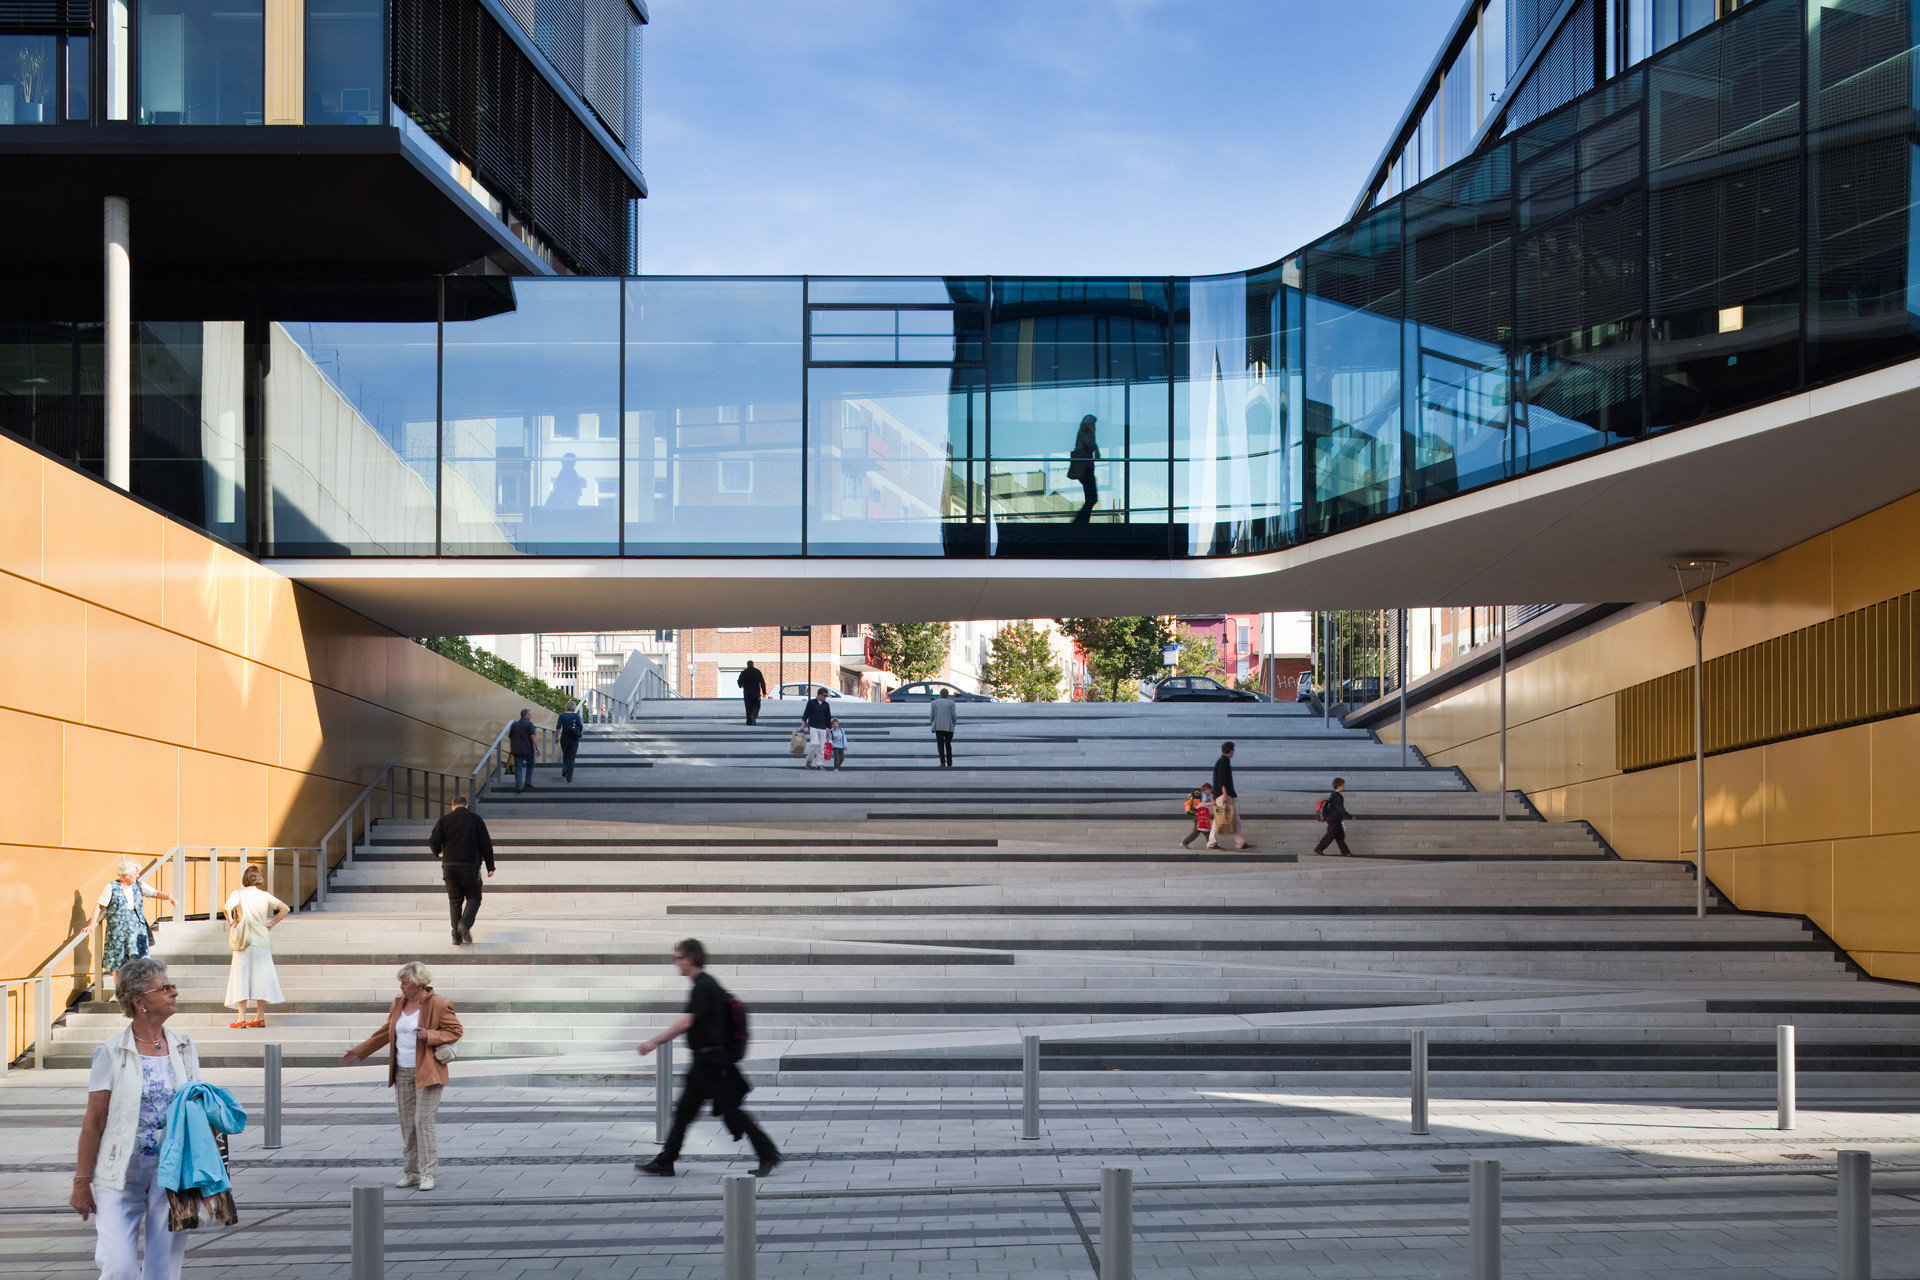 Thereu0027s A Similar Stair Design In Aachen, ...